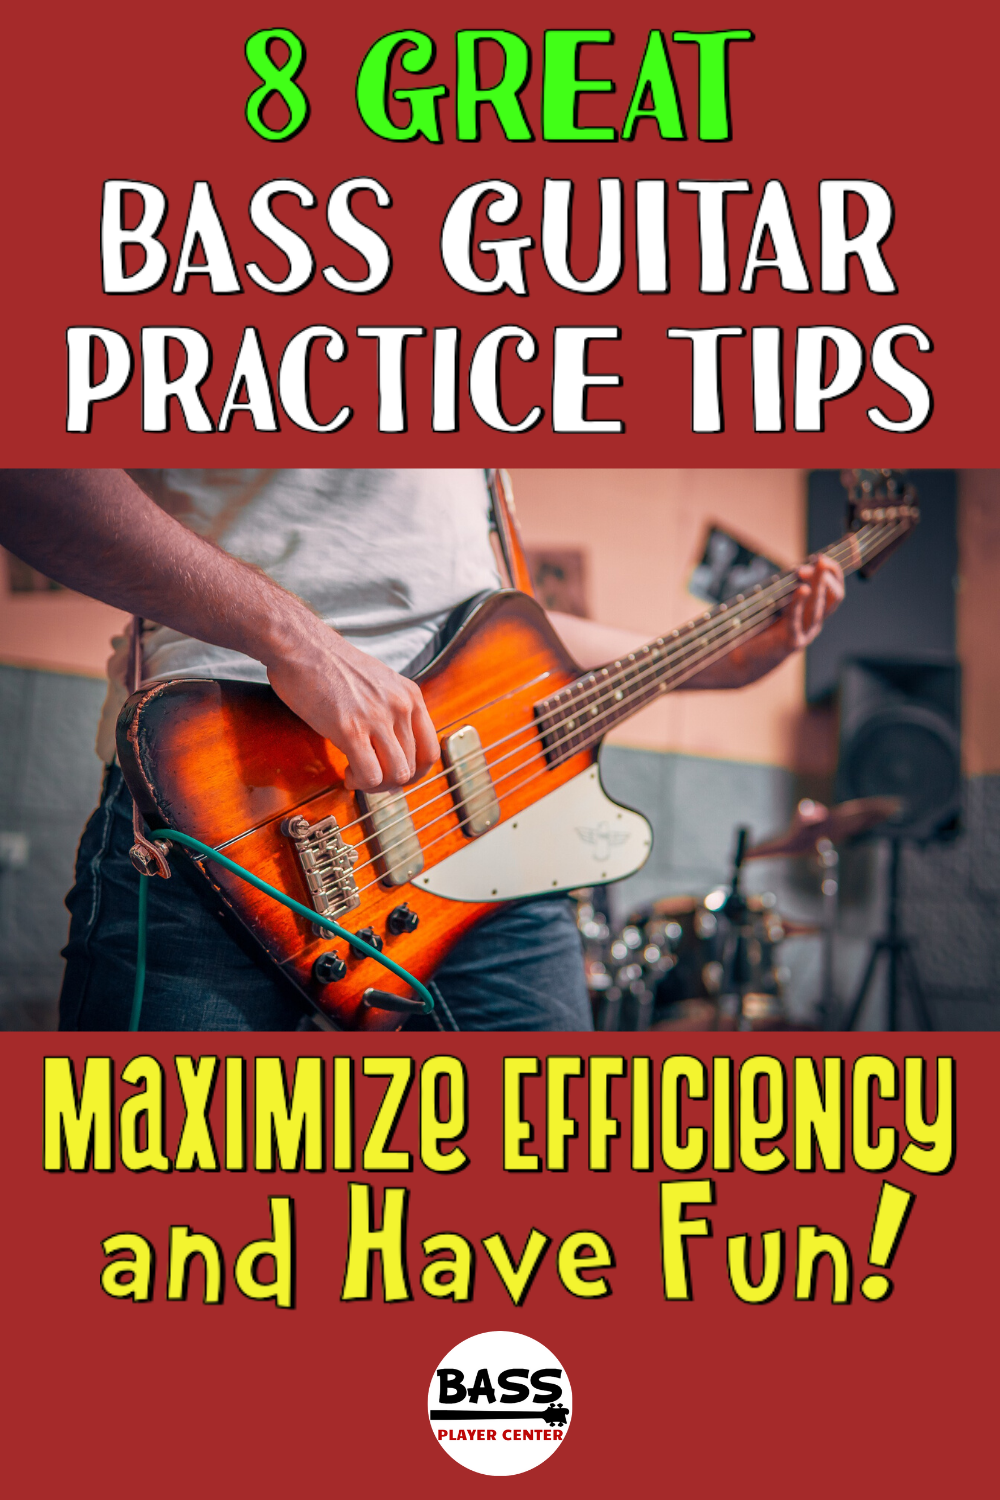 Bass Guitar Practice Tips Maximize Efficiency and Have Fun 8